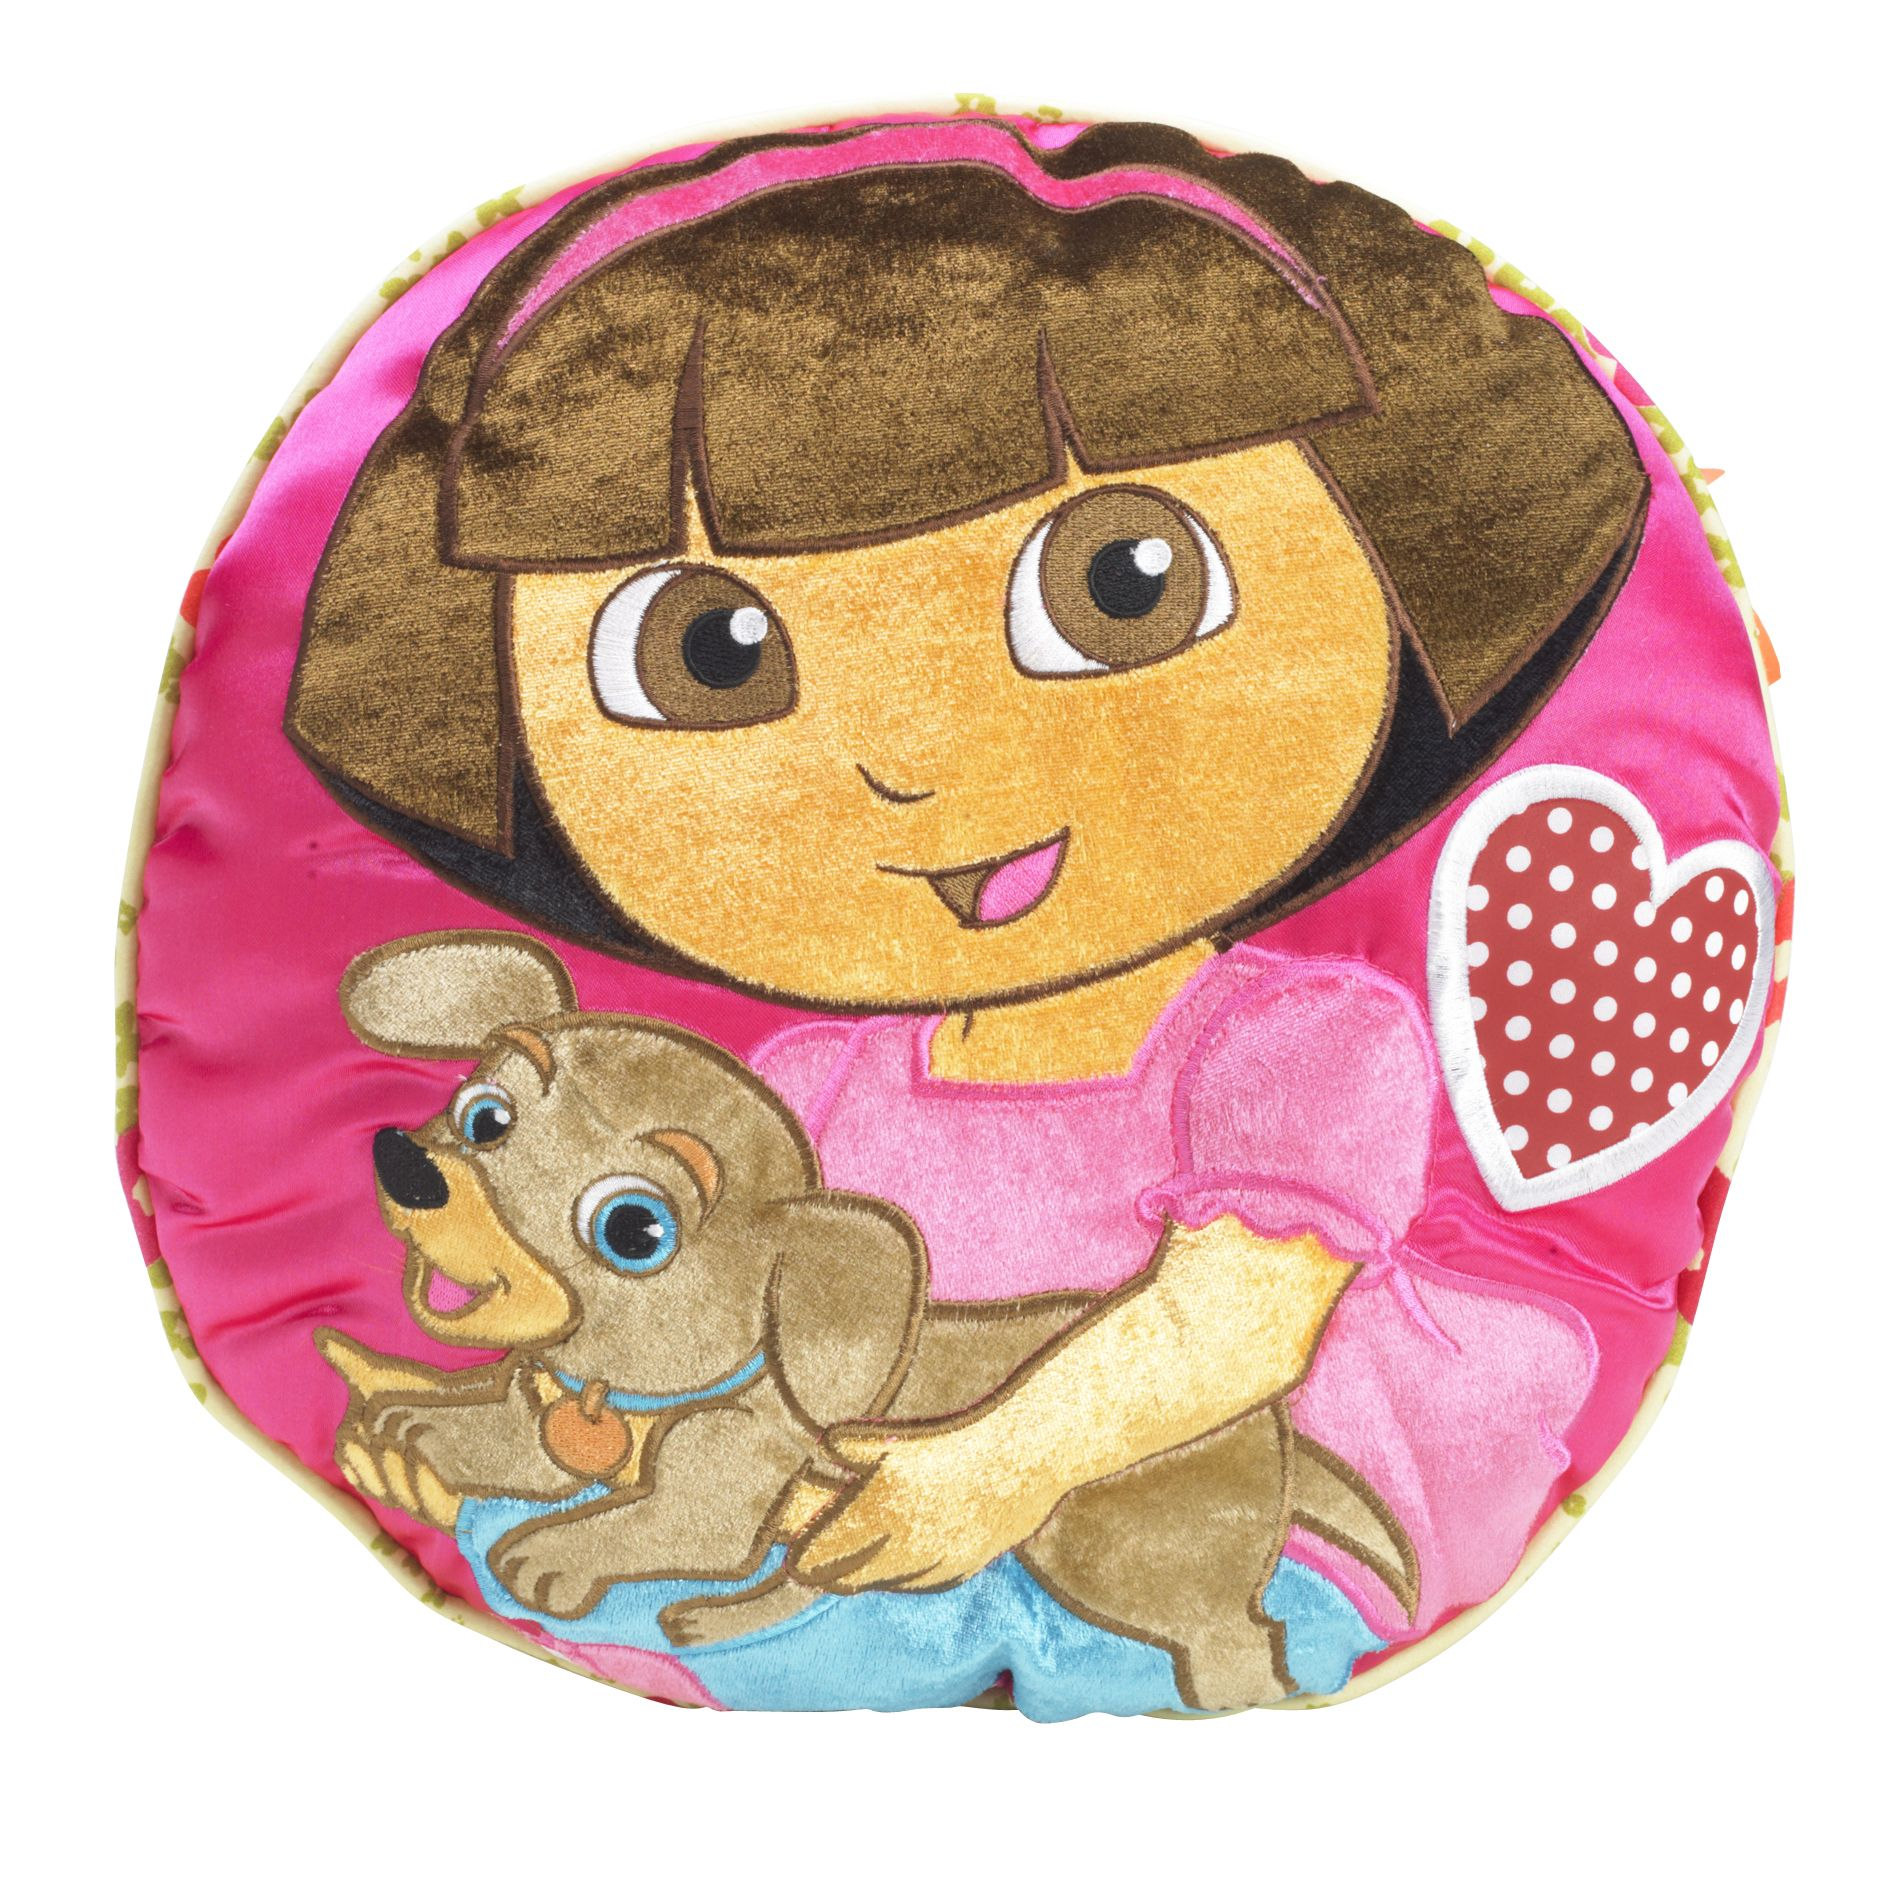 Dora And Puppy Decorative Pillow